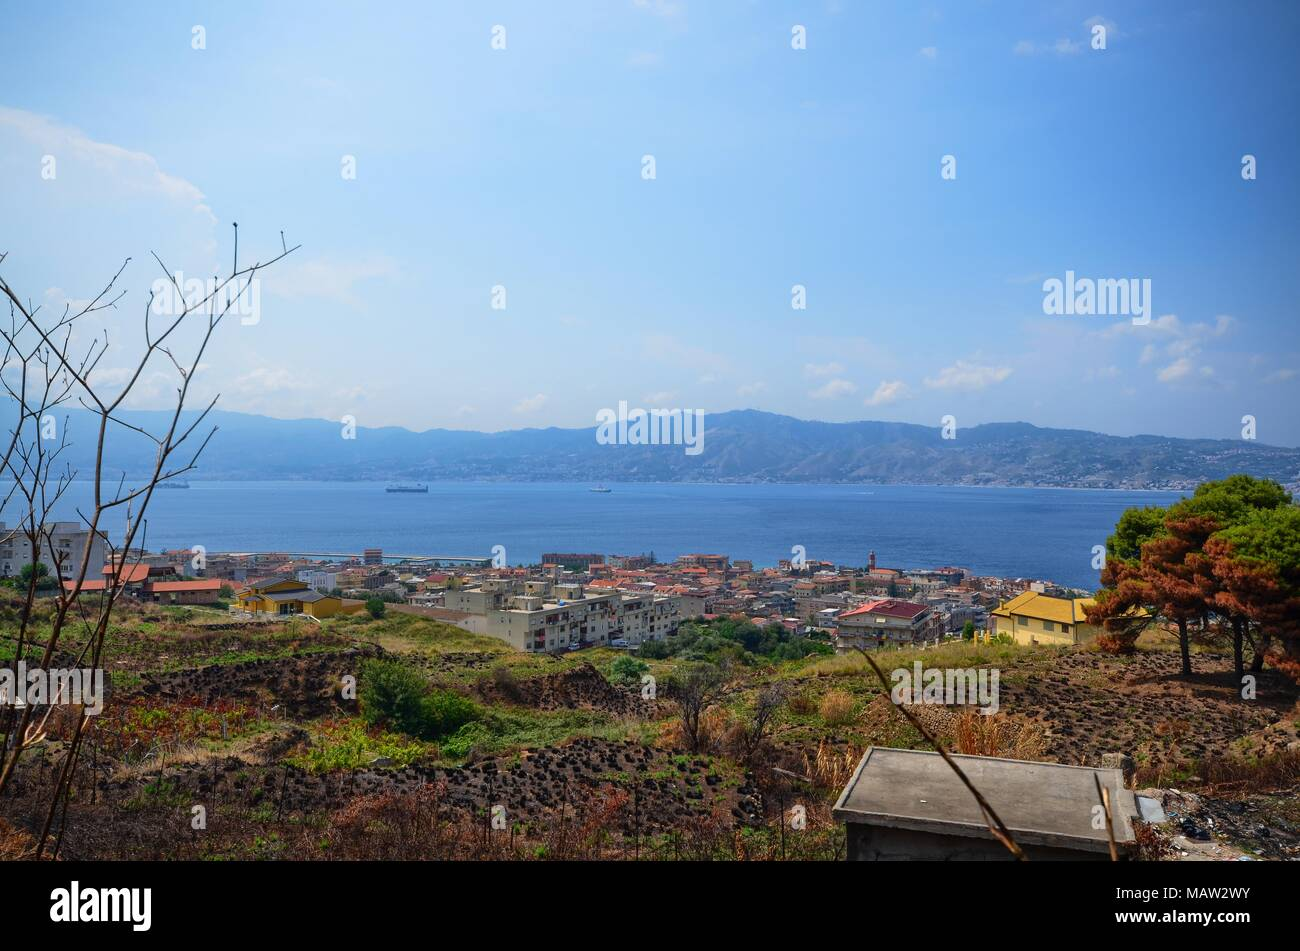 Villa san Giovanni, Italy, Calabria August 15 2015. View of the Strait of Messina, from Calabria to Sicily. - Stock Image